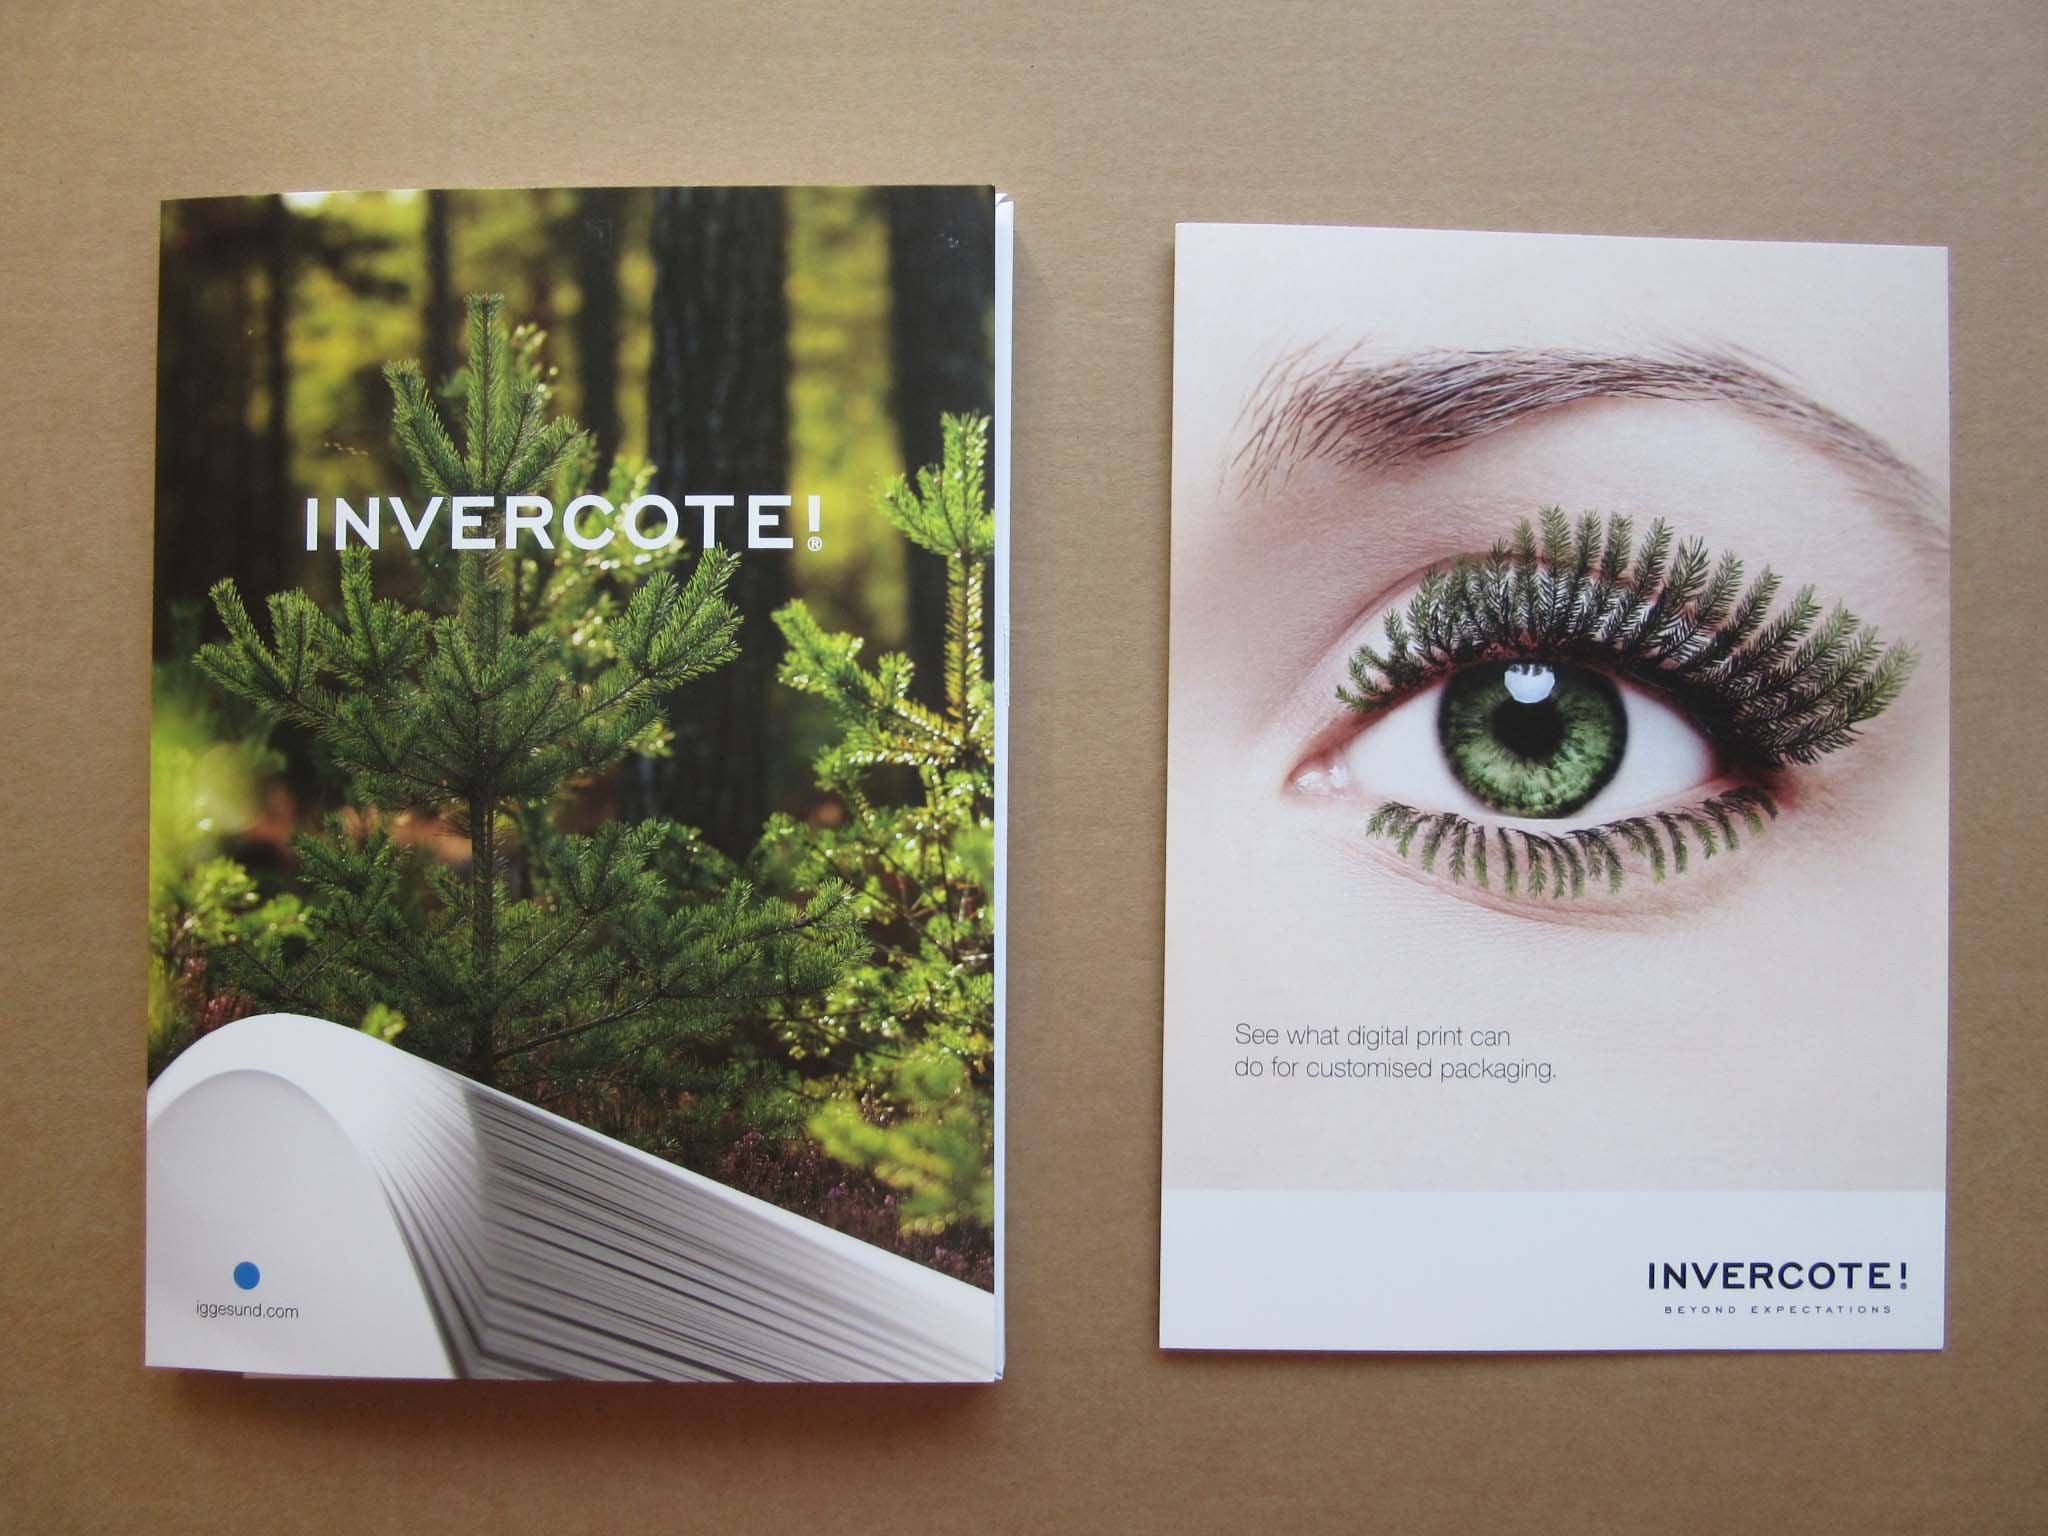 Examples of Iggesund Invercote paperboard